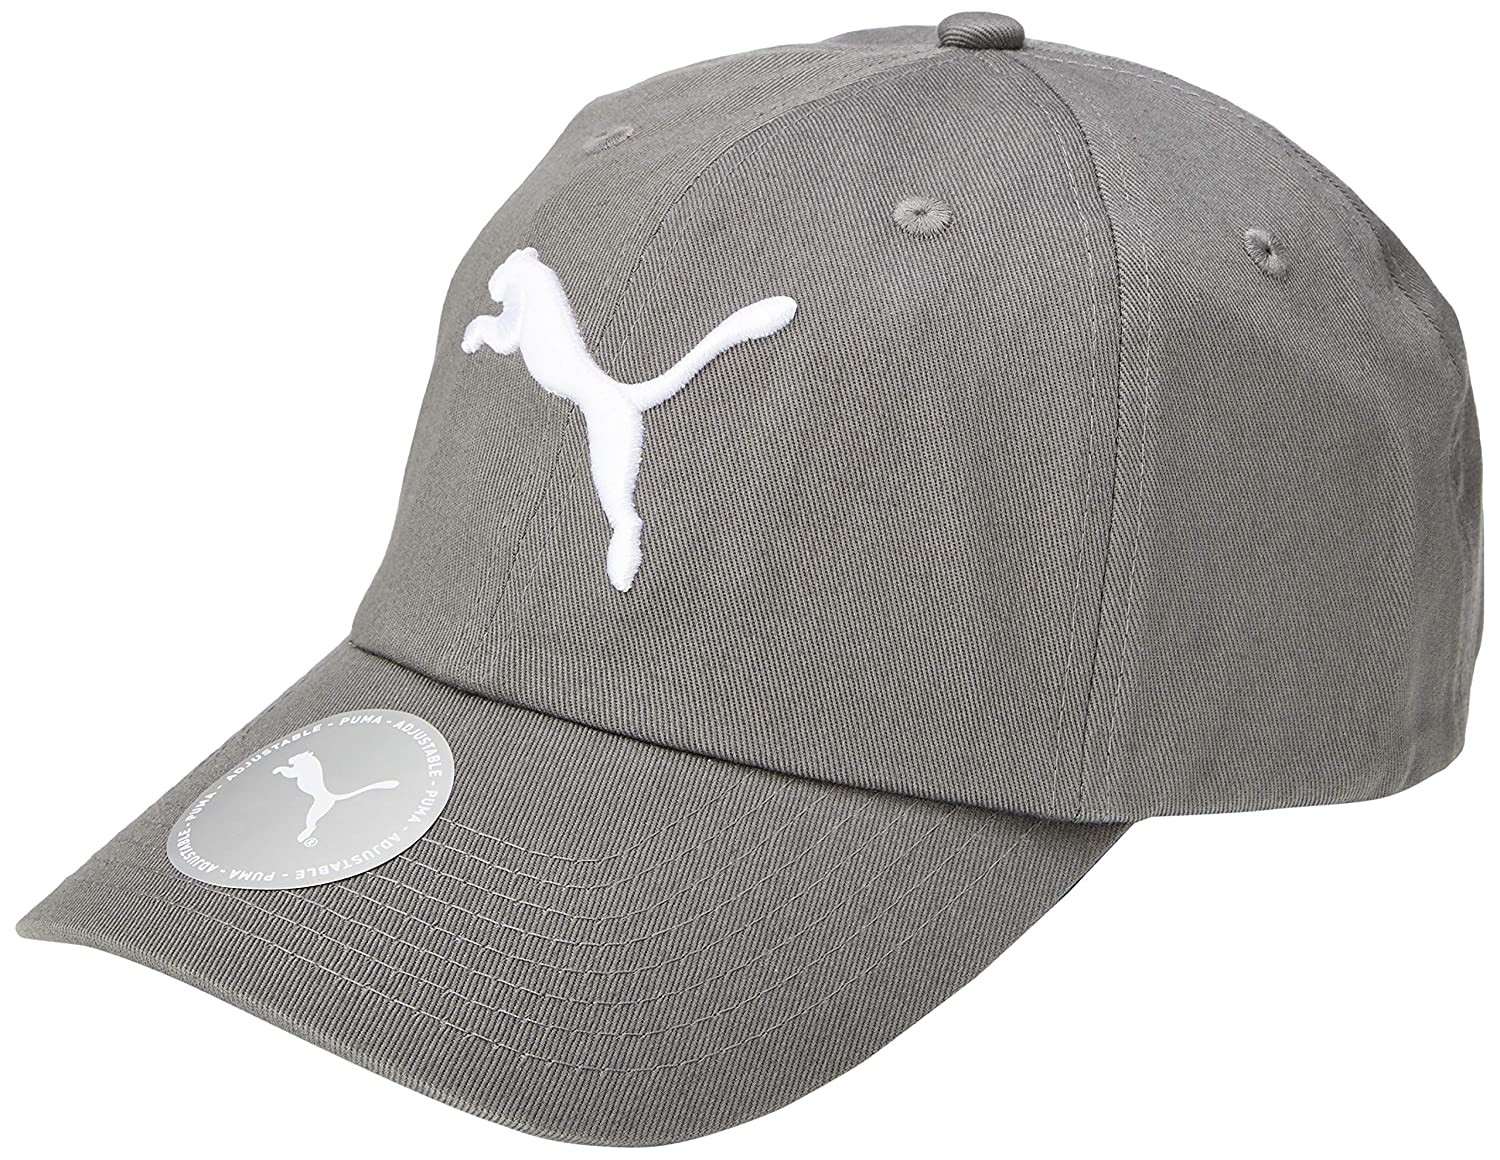 Taglia Unica Adulto Puma 22416 Cappello Unisex Castlerock//Big Cat